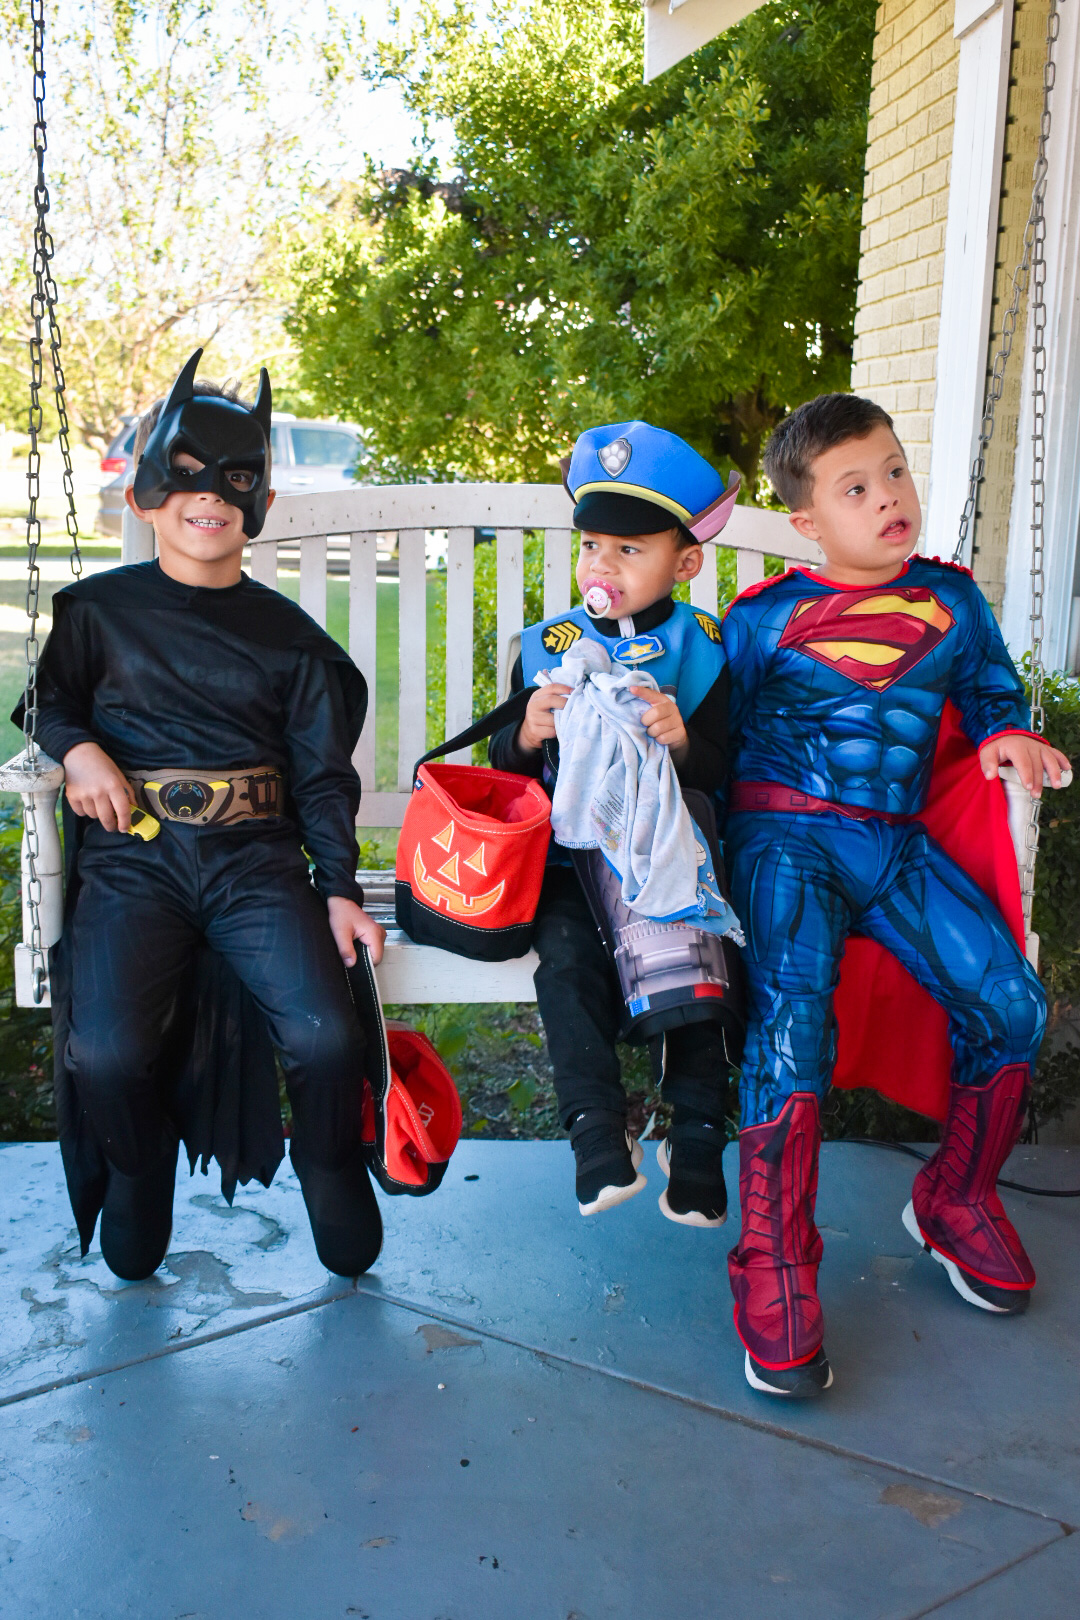 Three little boys dressed up as Chase from Paw Patrol, Superman, and Batman for halloween